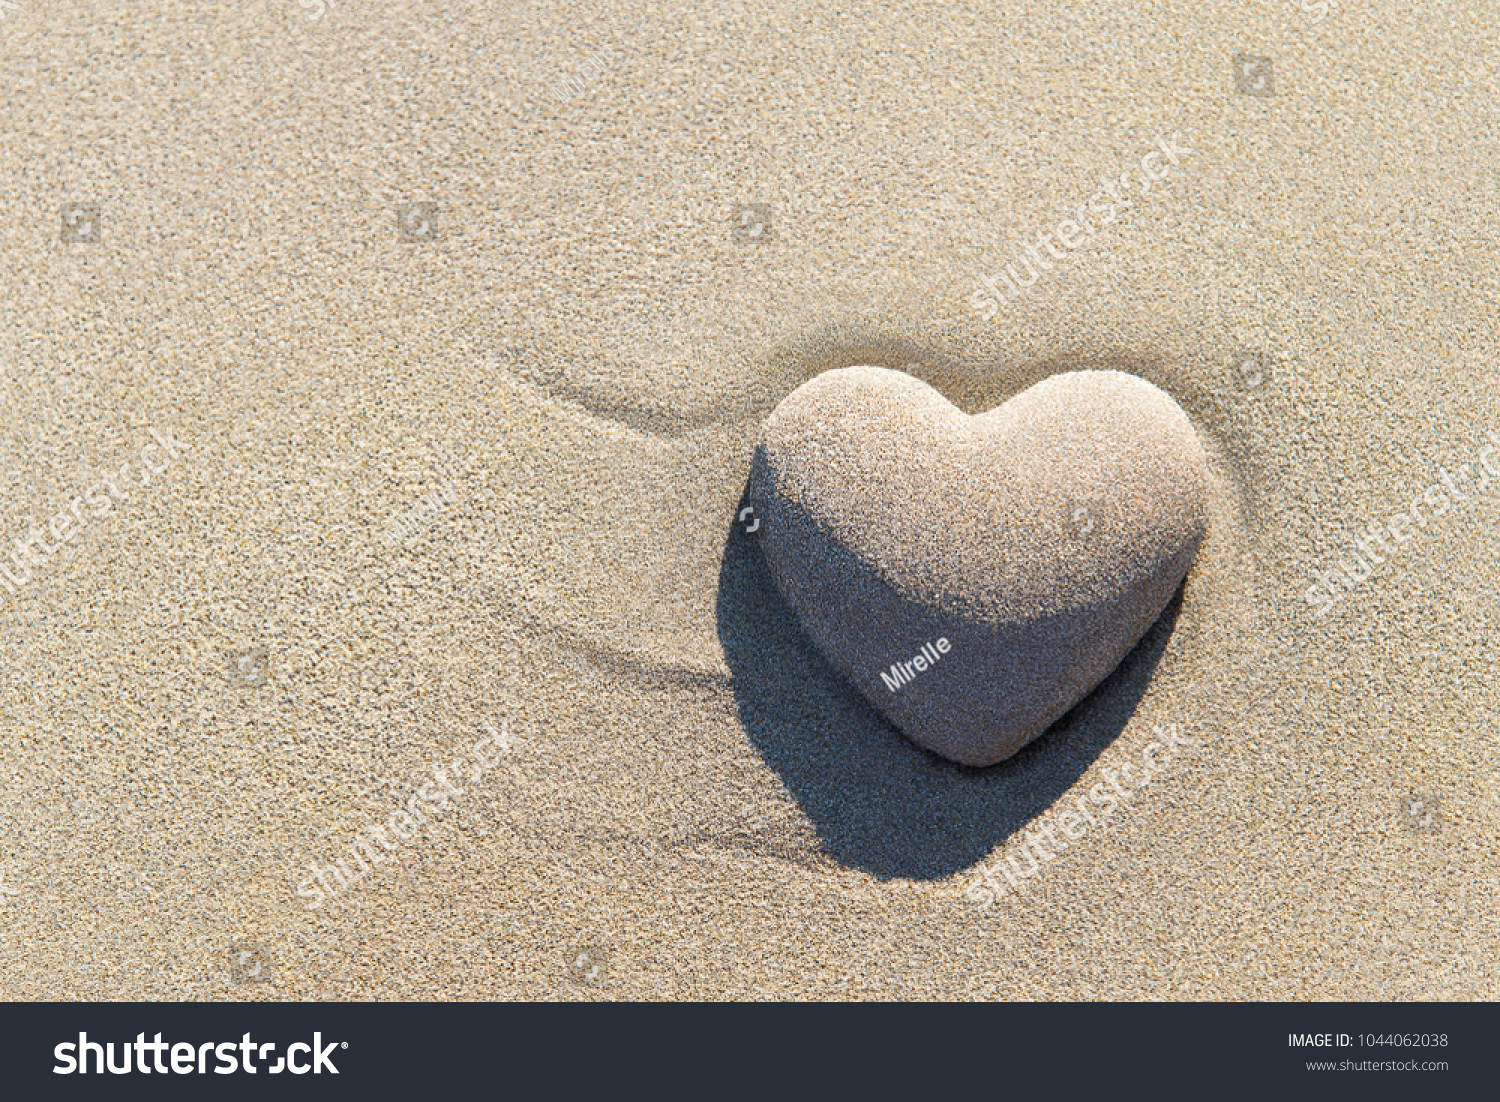 Heart made sand shadow on sandy stock photo 1044062038 shutterstock heart made of sand with shadow on sandy beach background saint valentines day greeting cards kristyandbryce Images